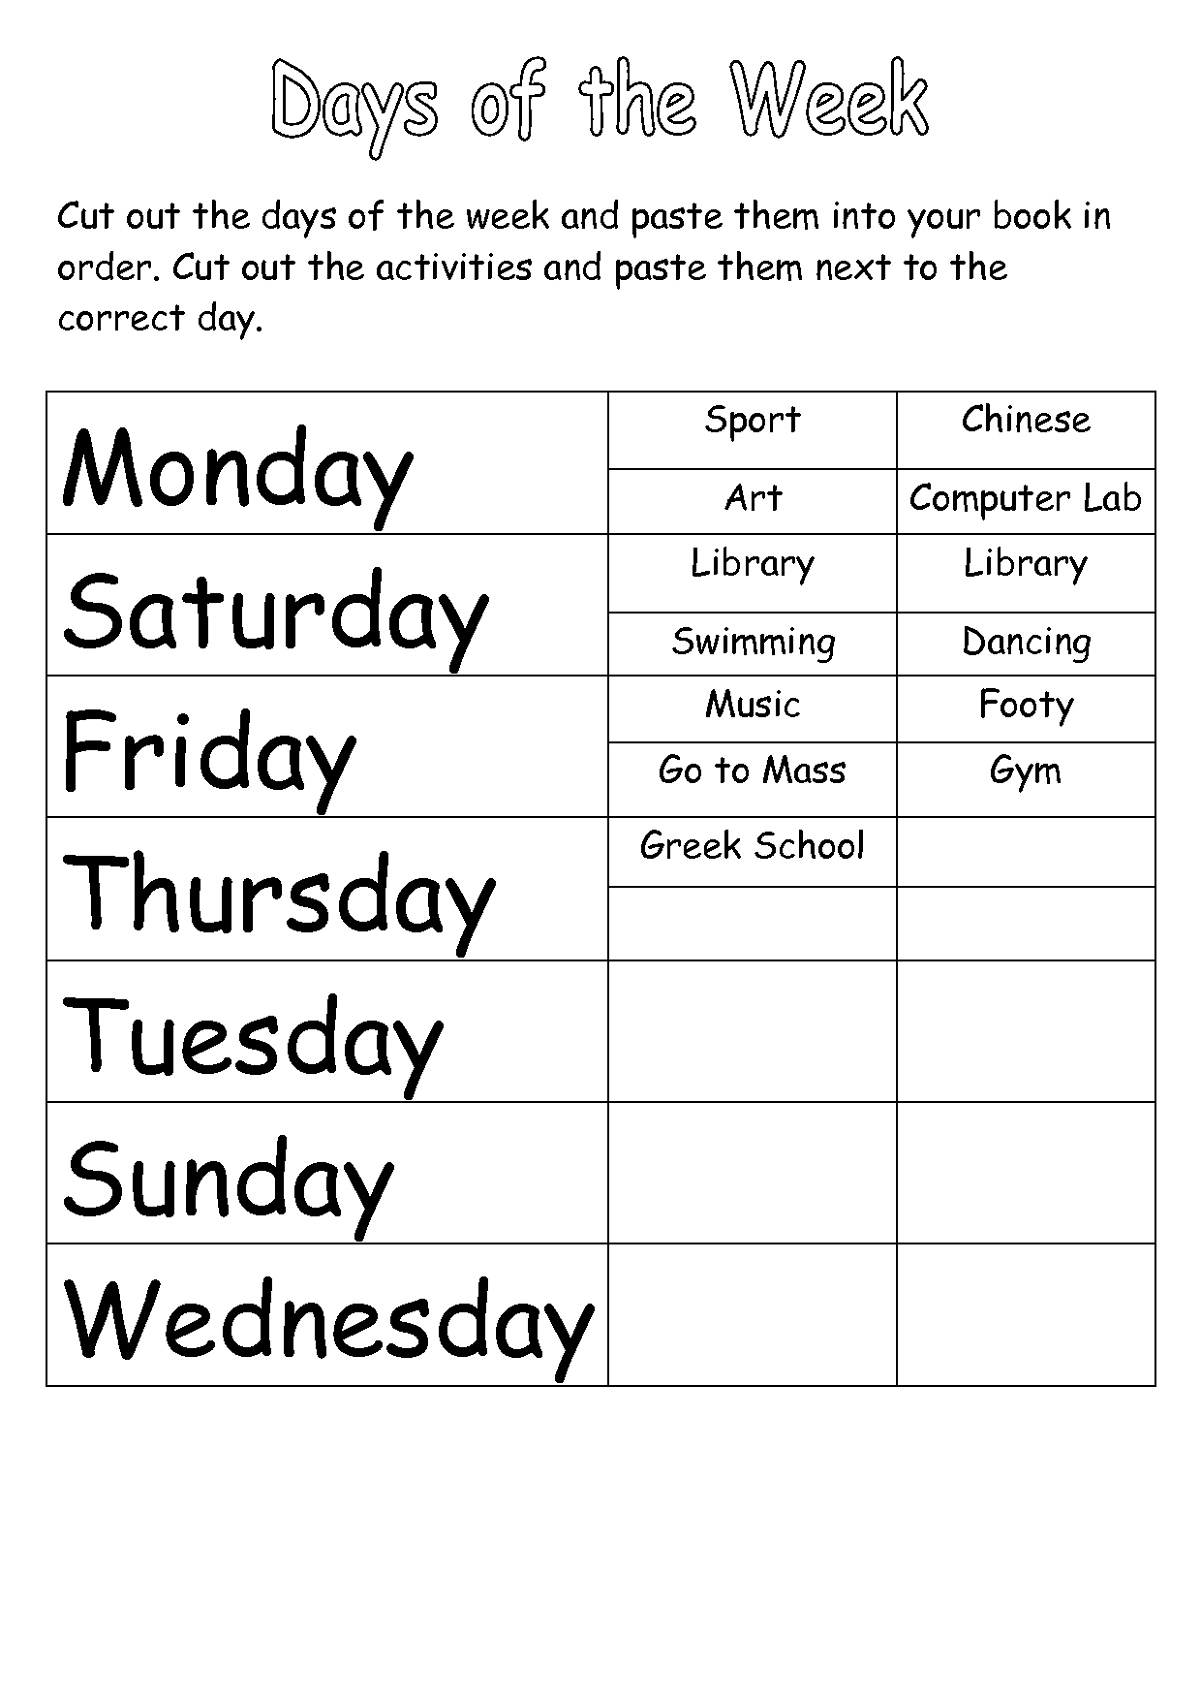 worksheets for days of the week with schedule